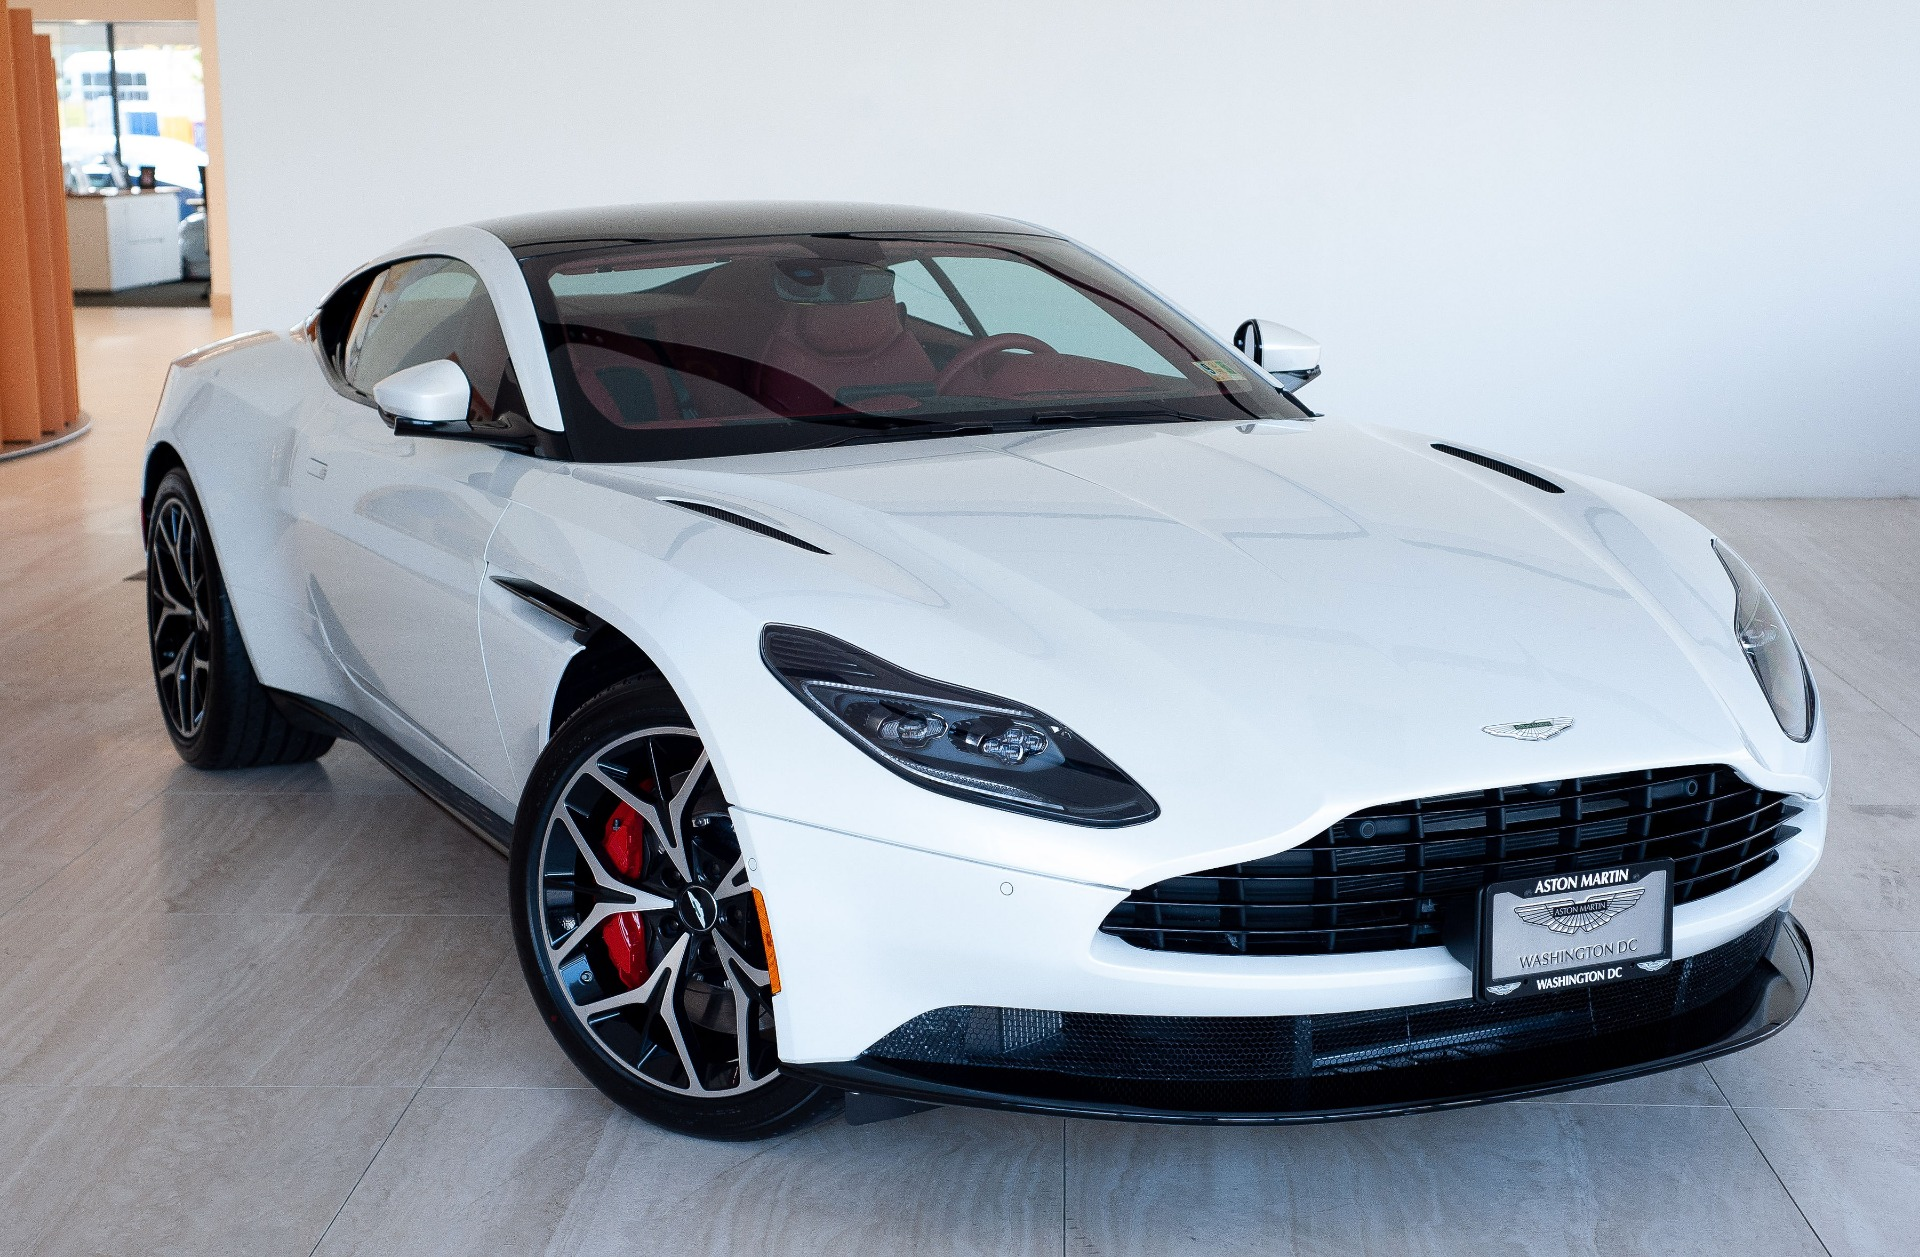 2019 aston martin db11 v8 stock # 9nl06535 for sale near vienna, va